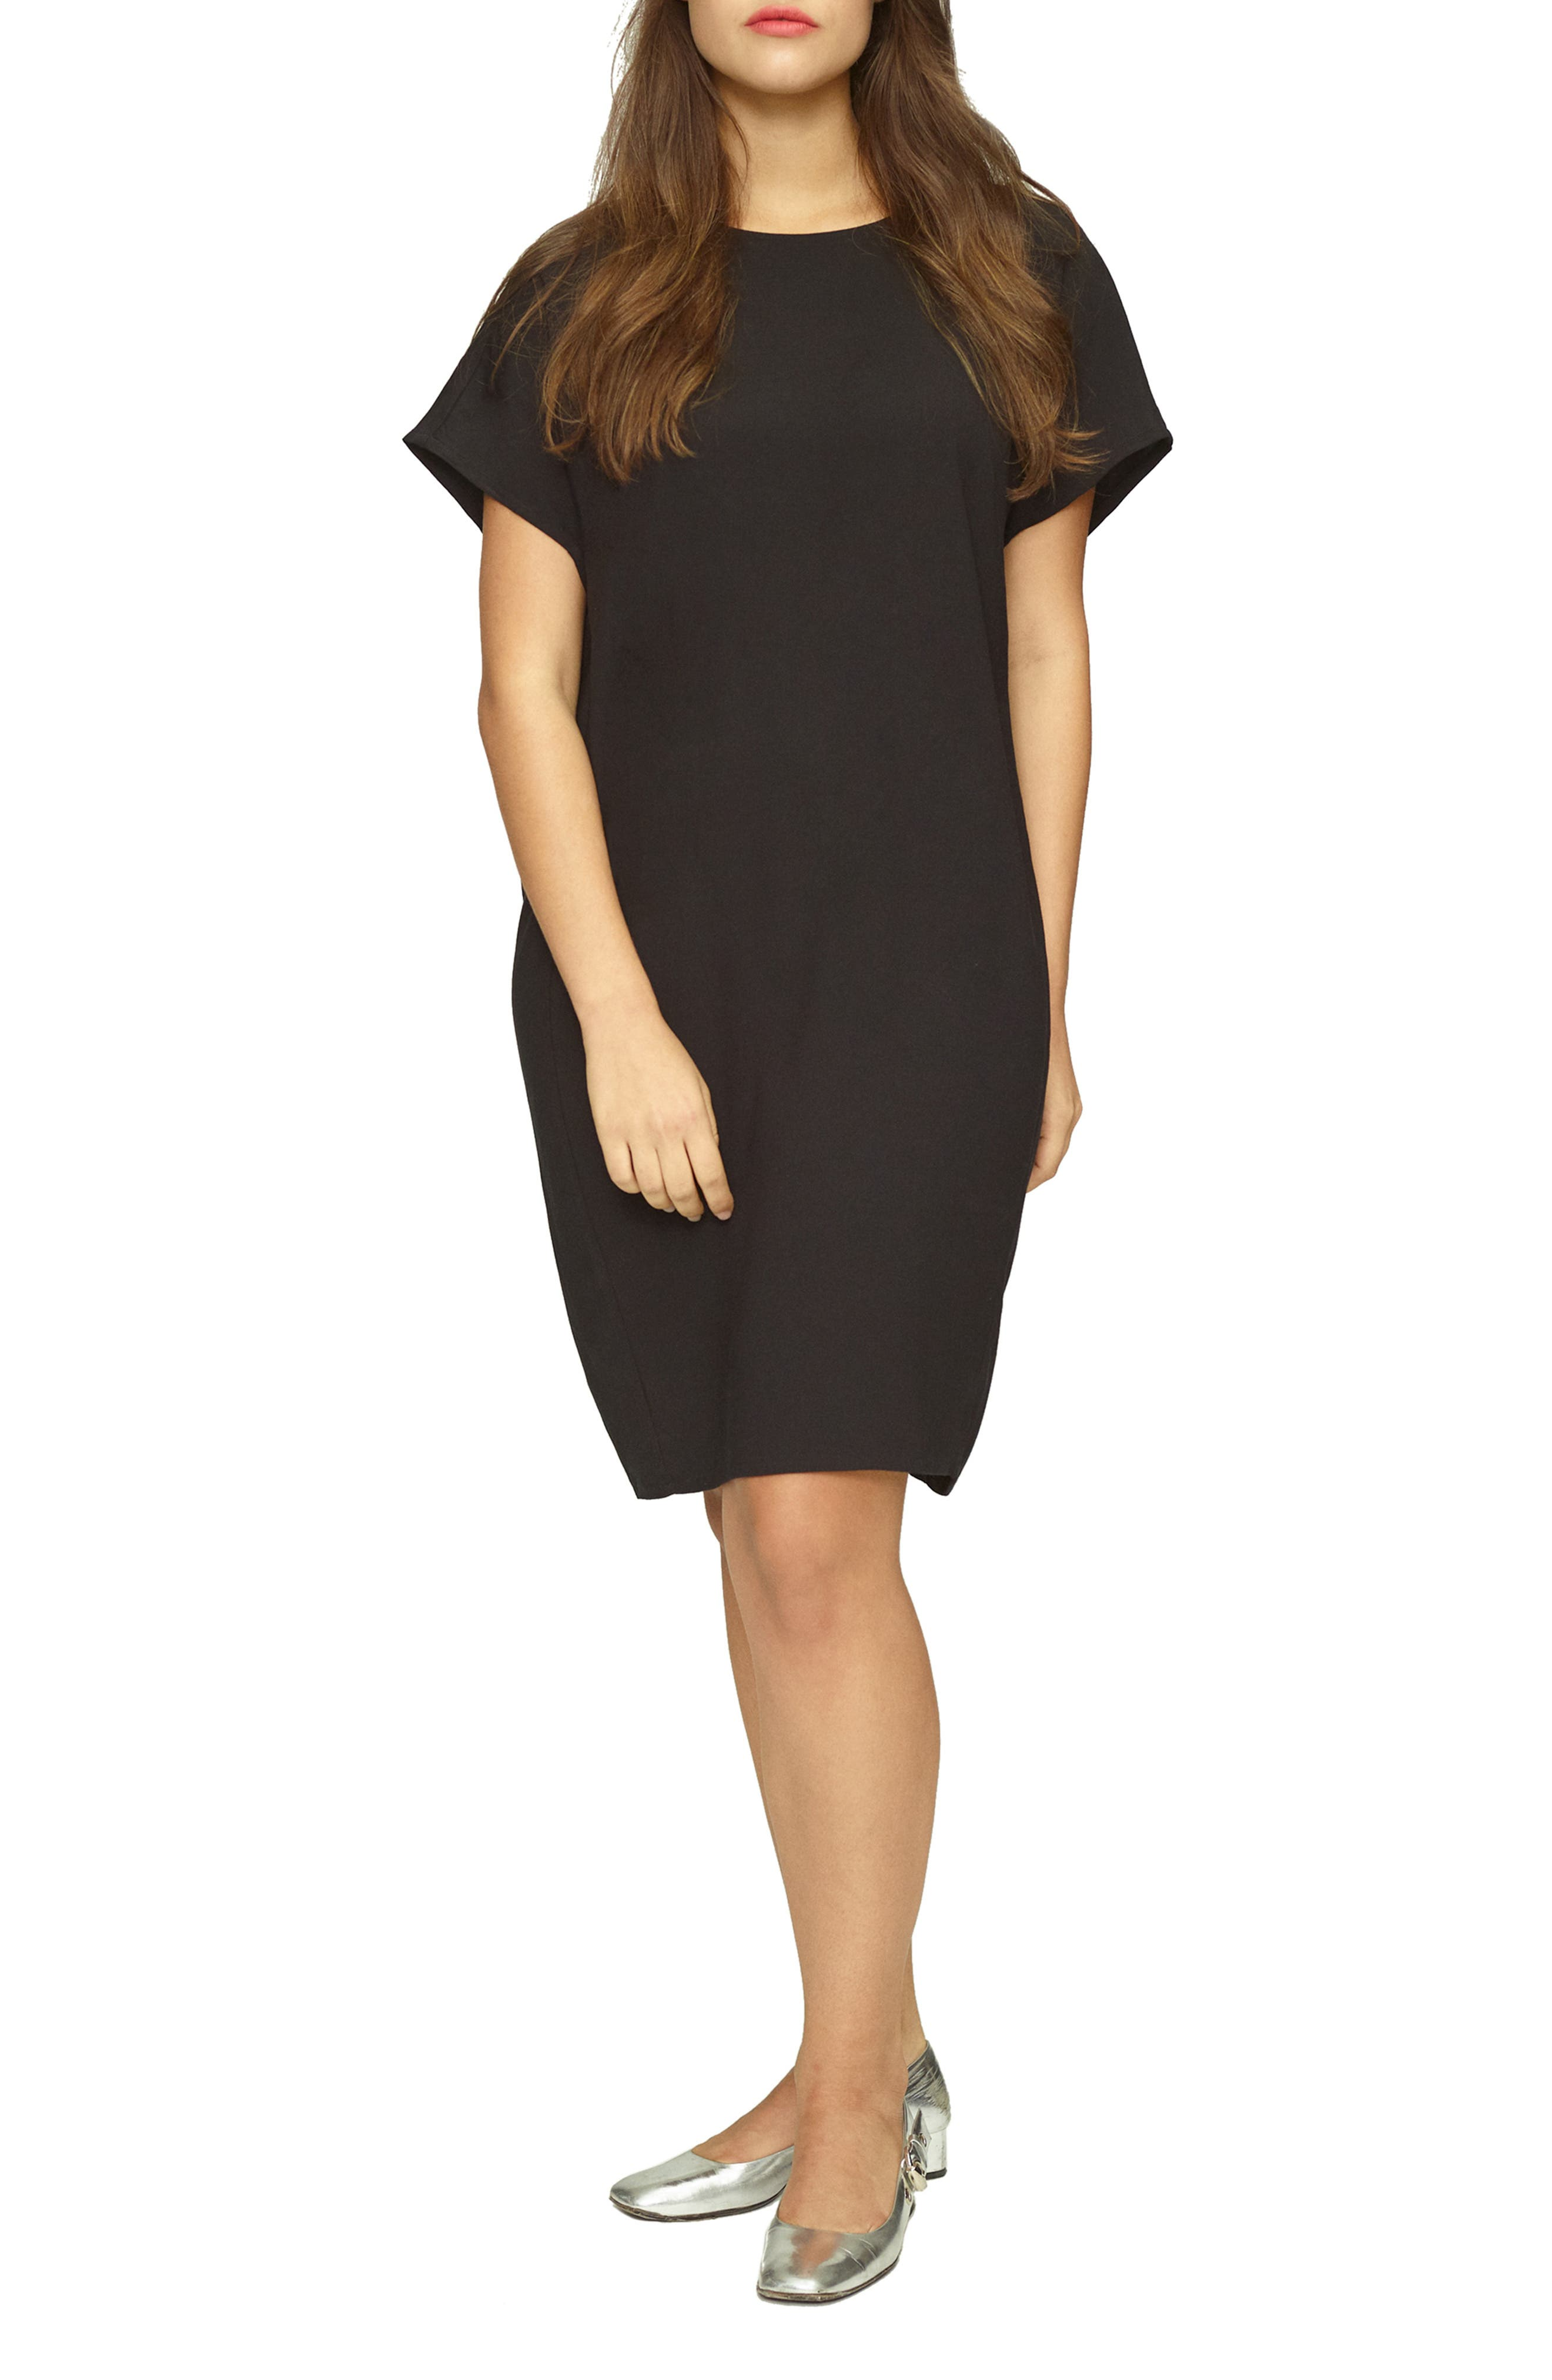 UNIVERSAL STANDARD, Luxe Twill Sheath Dress, Main thumbnail 1, color, 001